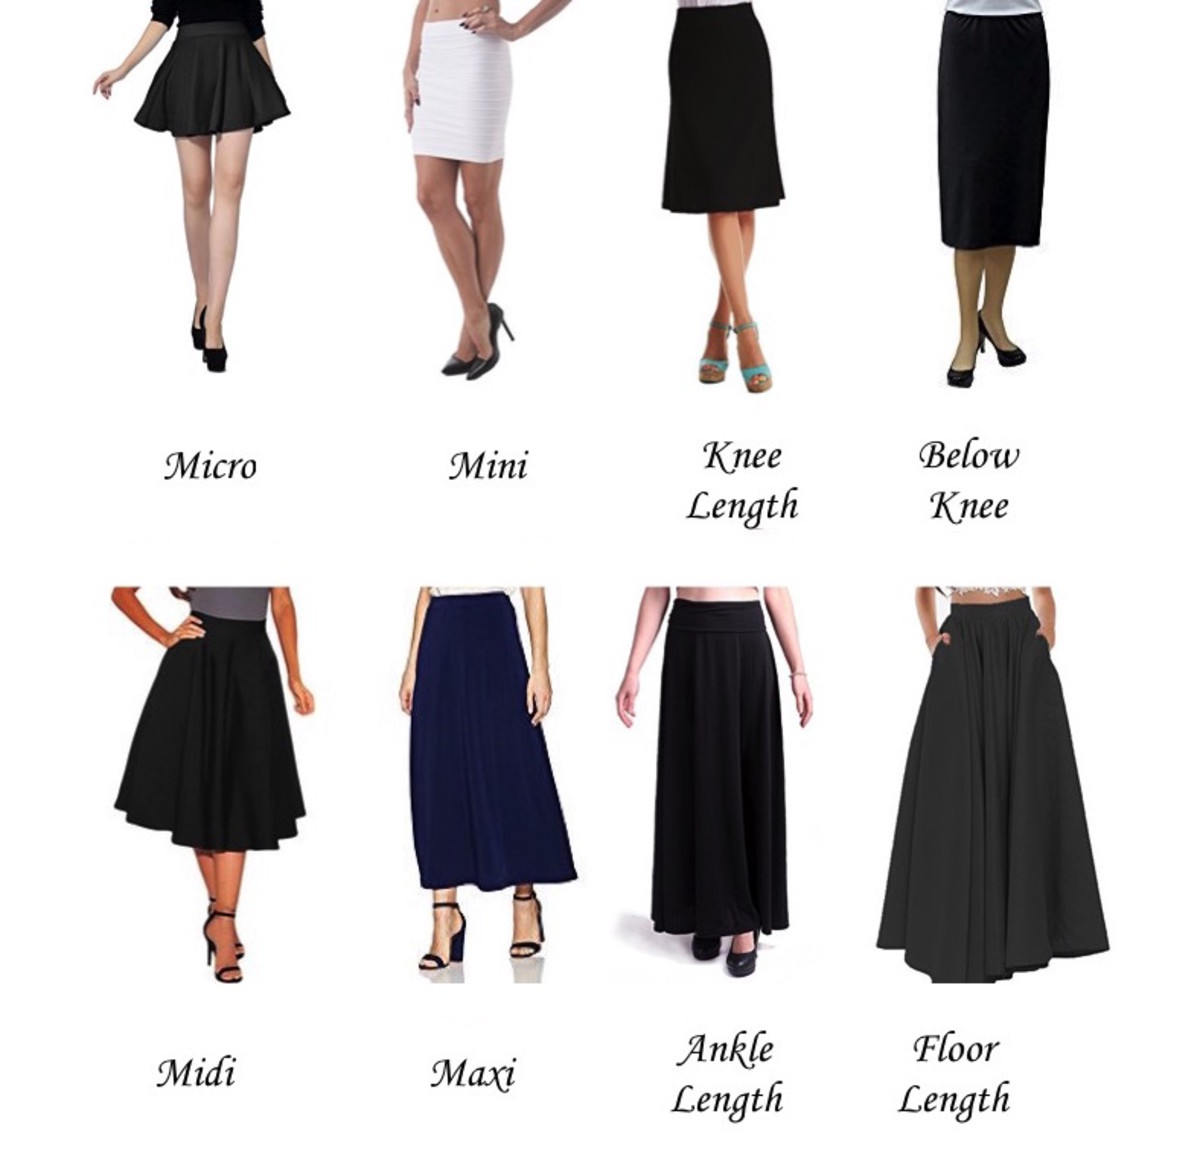 az list of types and silhouettes of skirts in fashion